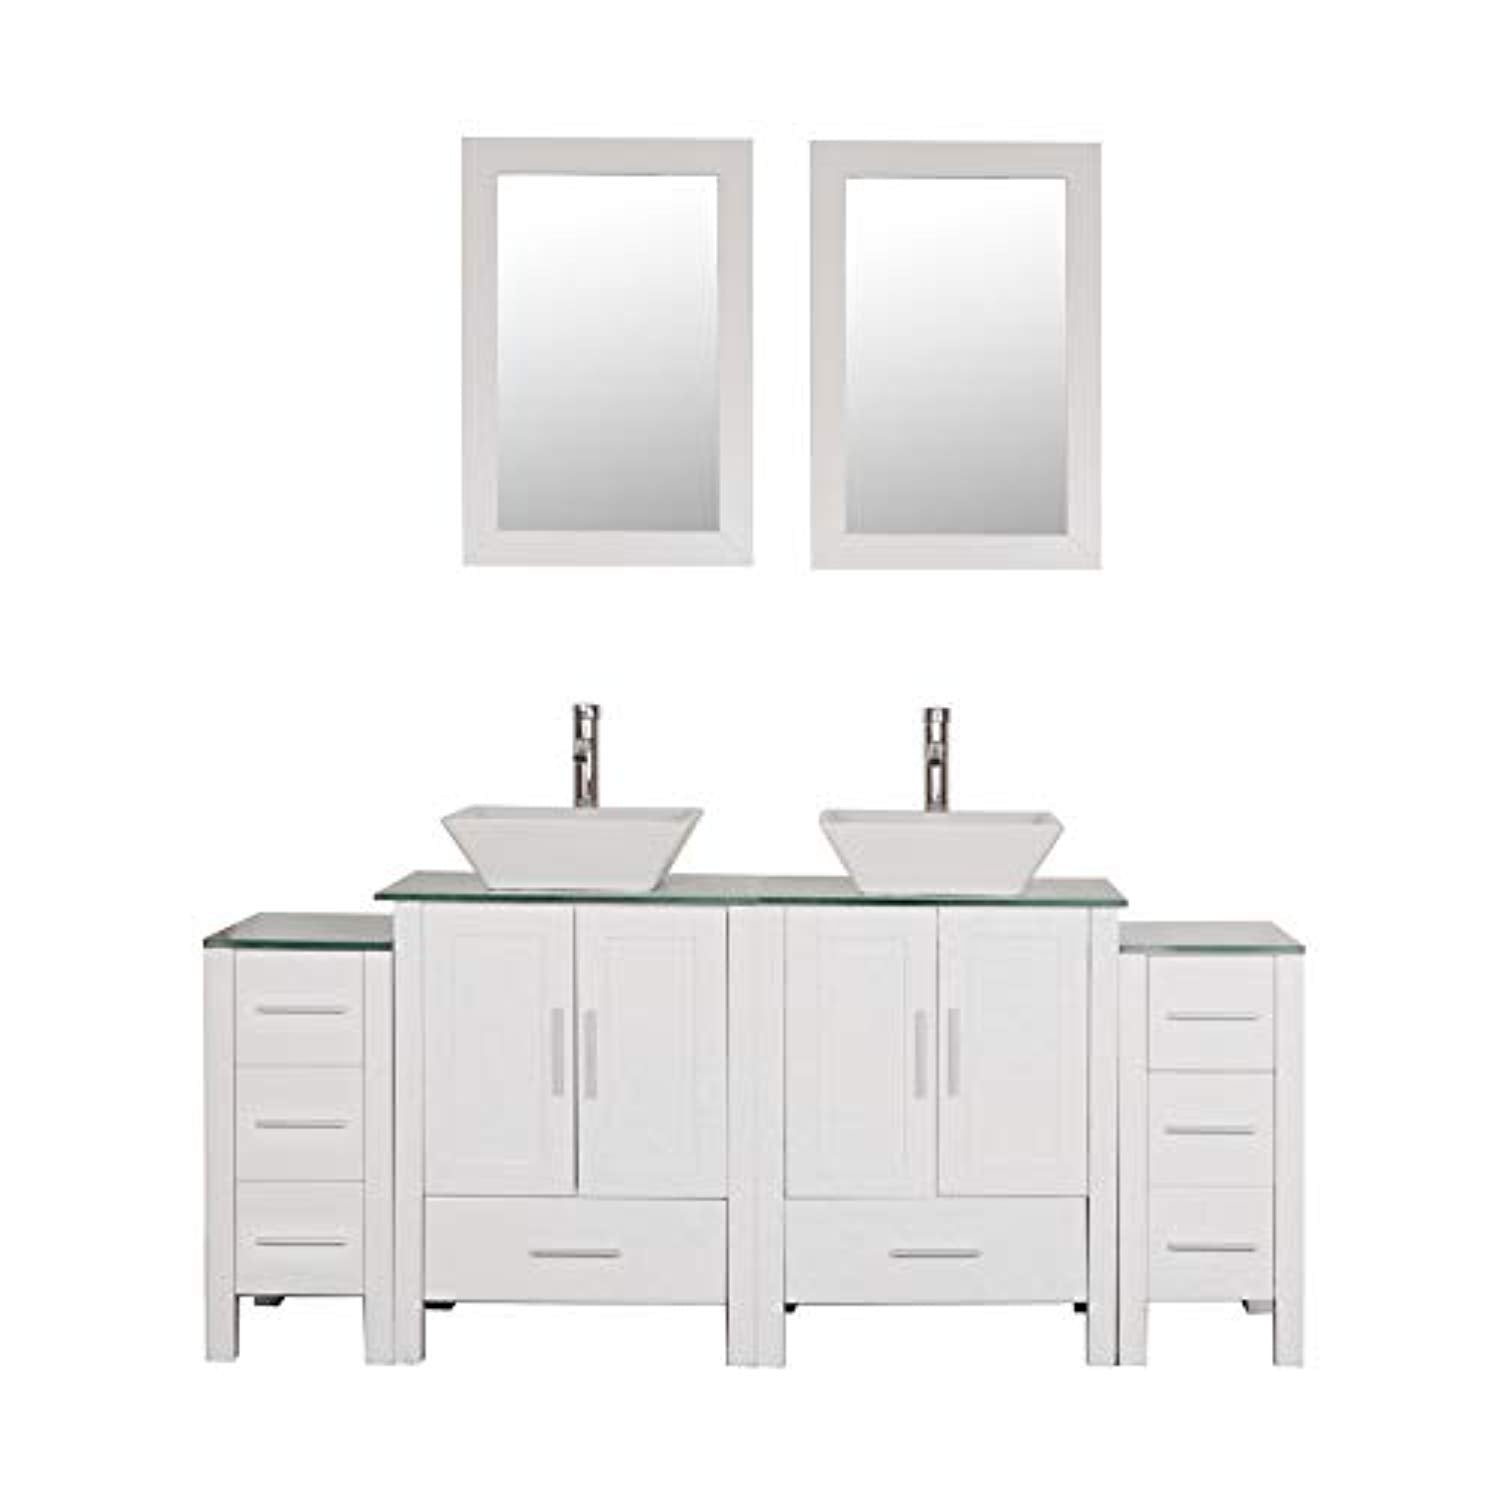 Surprising Homecart 72 Double Sink Bathroom Vanity Cabinet Combo Glass Top White Wood W 2 Basin Faucets Mirrors And Drains Home Remodeling Inspirations Genioncuboardxyz